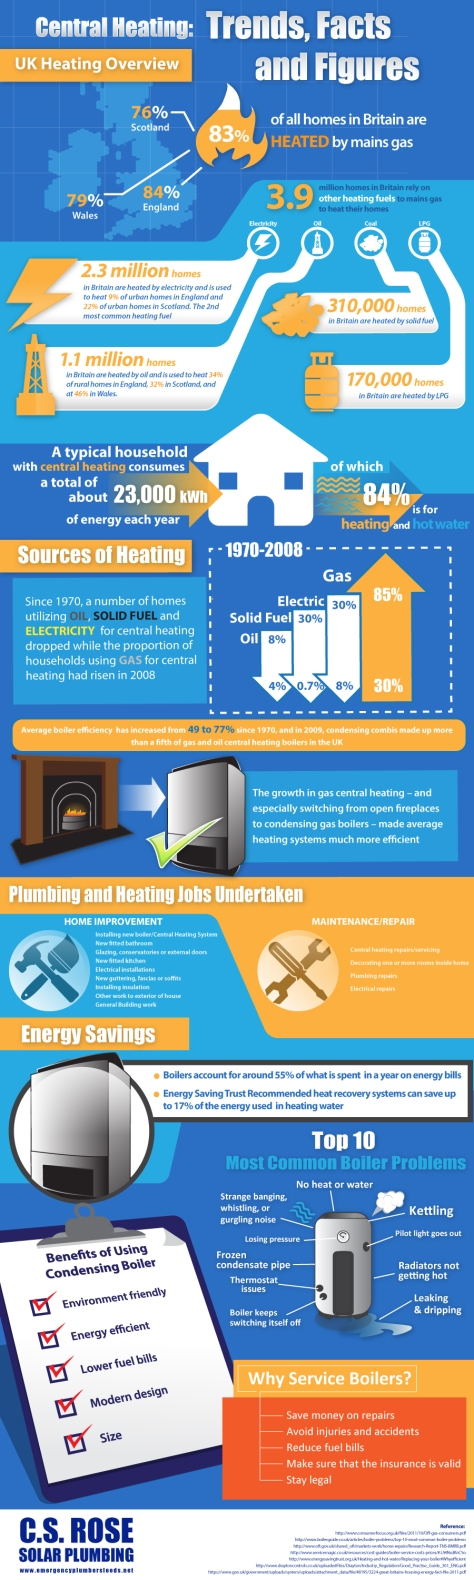 Central Heating Trends Facts And Figures